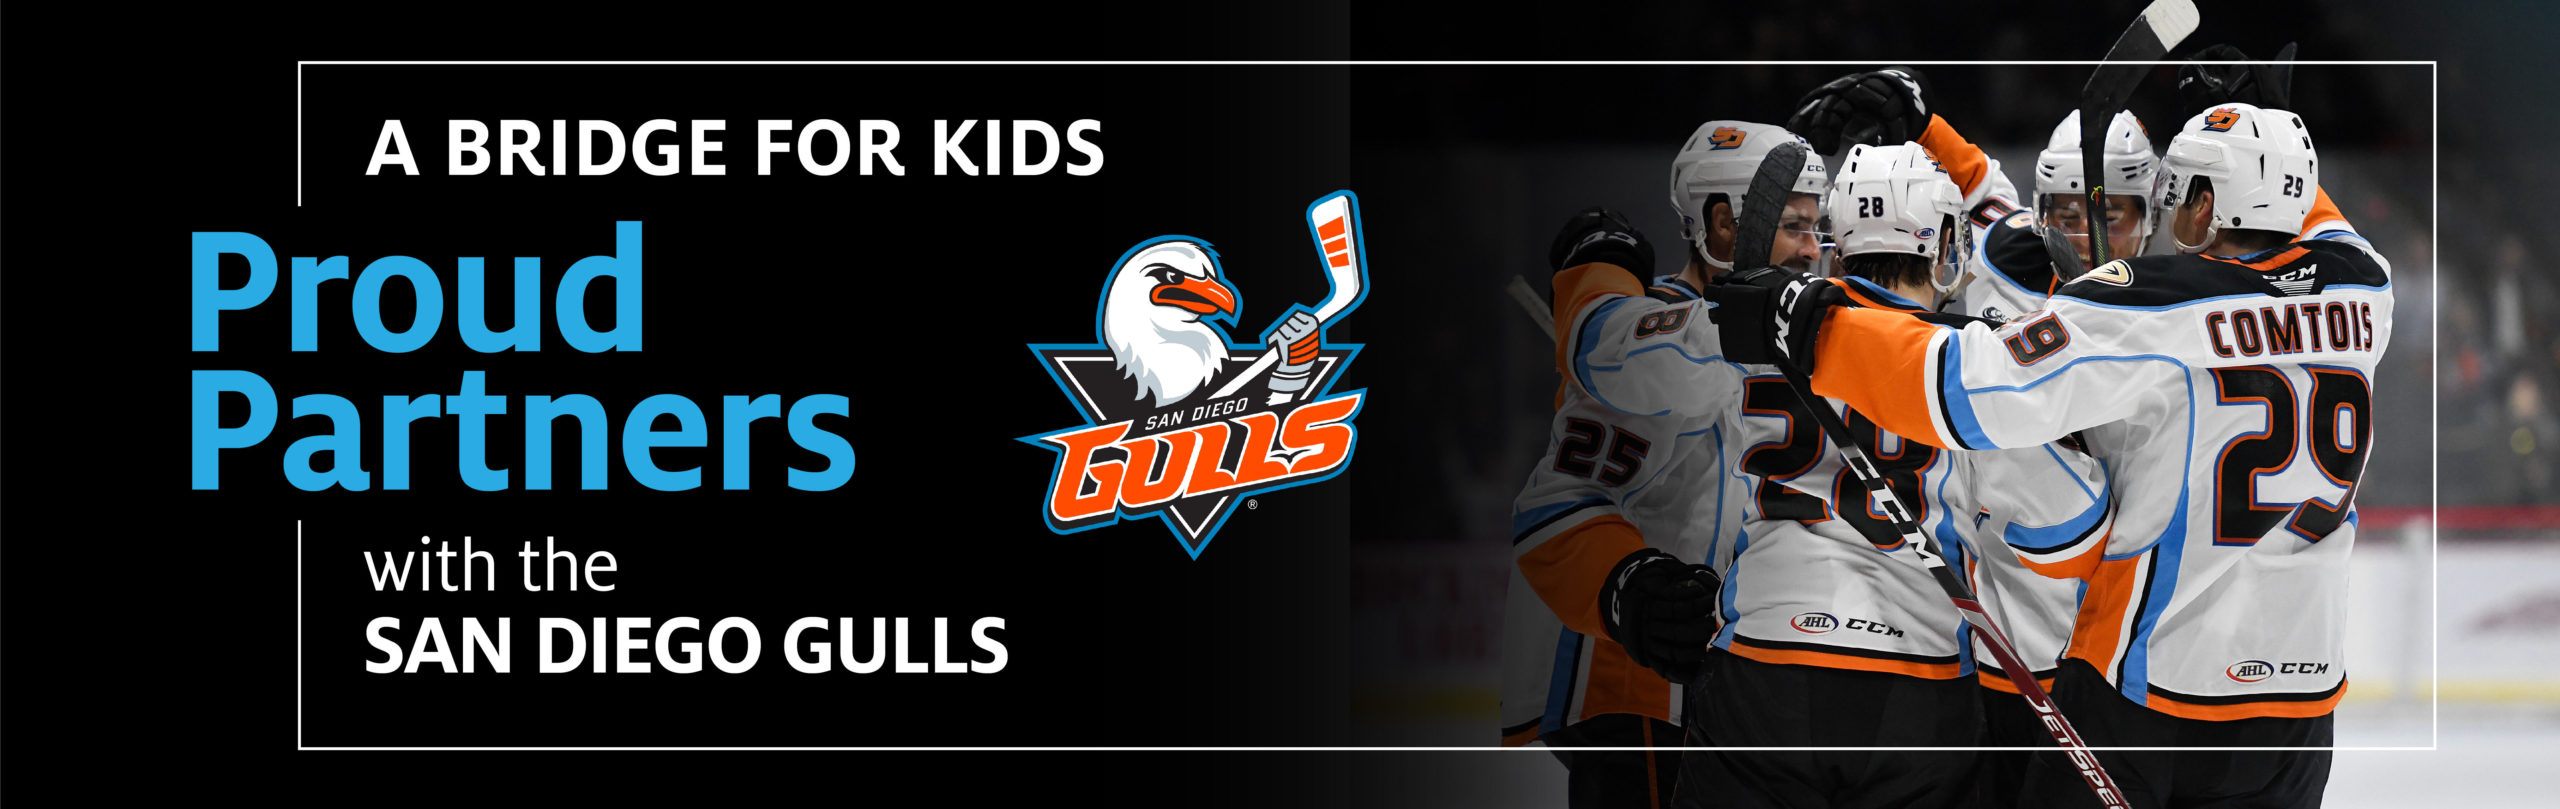 A picture of the San Diego Gulls